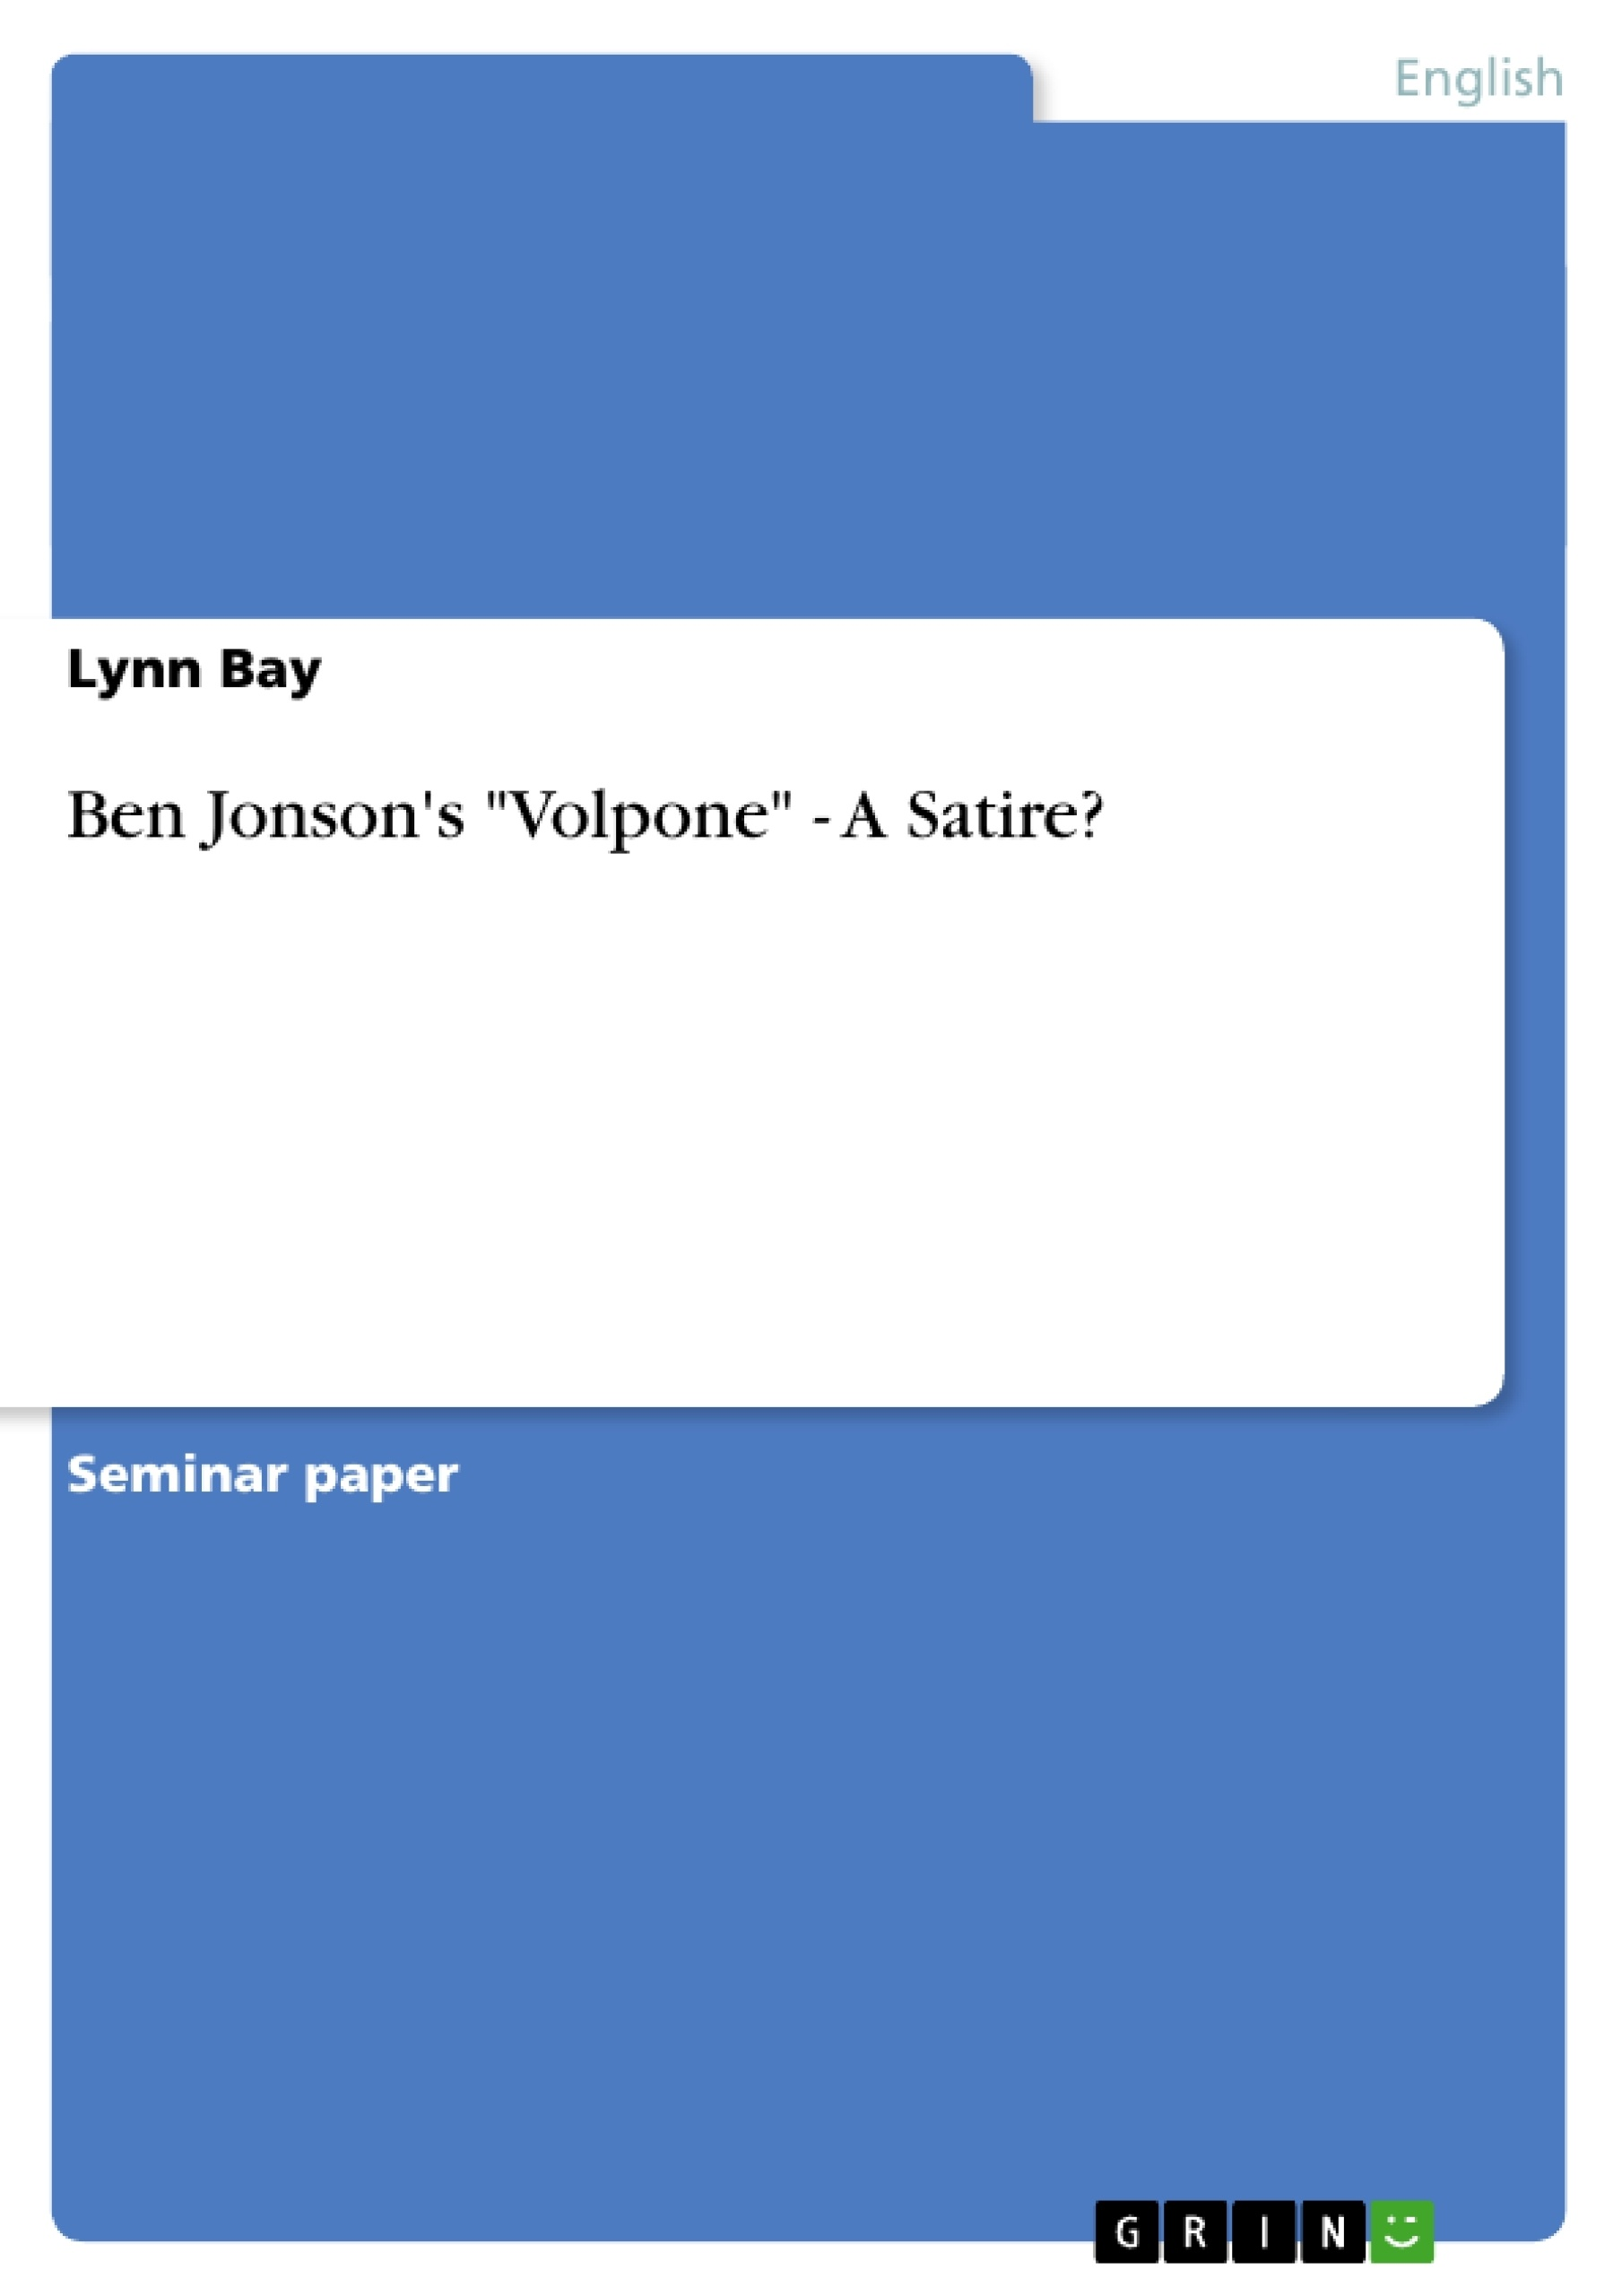 ben jonson s volpone a satire publish your master s thesis ben jonson s volpone a satire publish your master s thesis bachelor s thesis essay or term paper